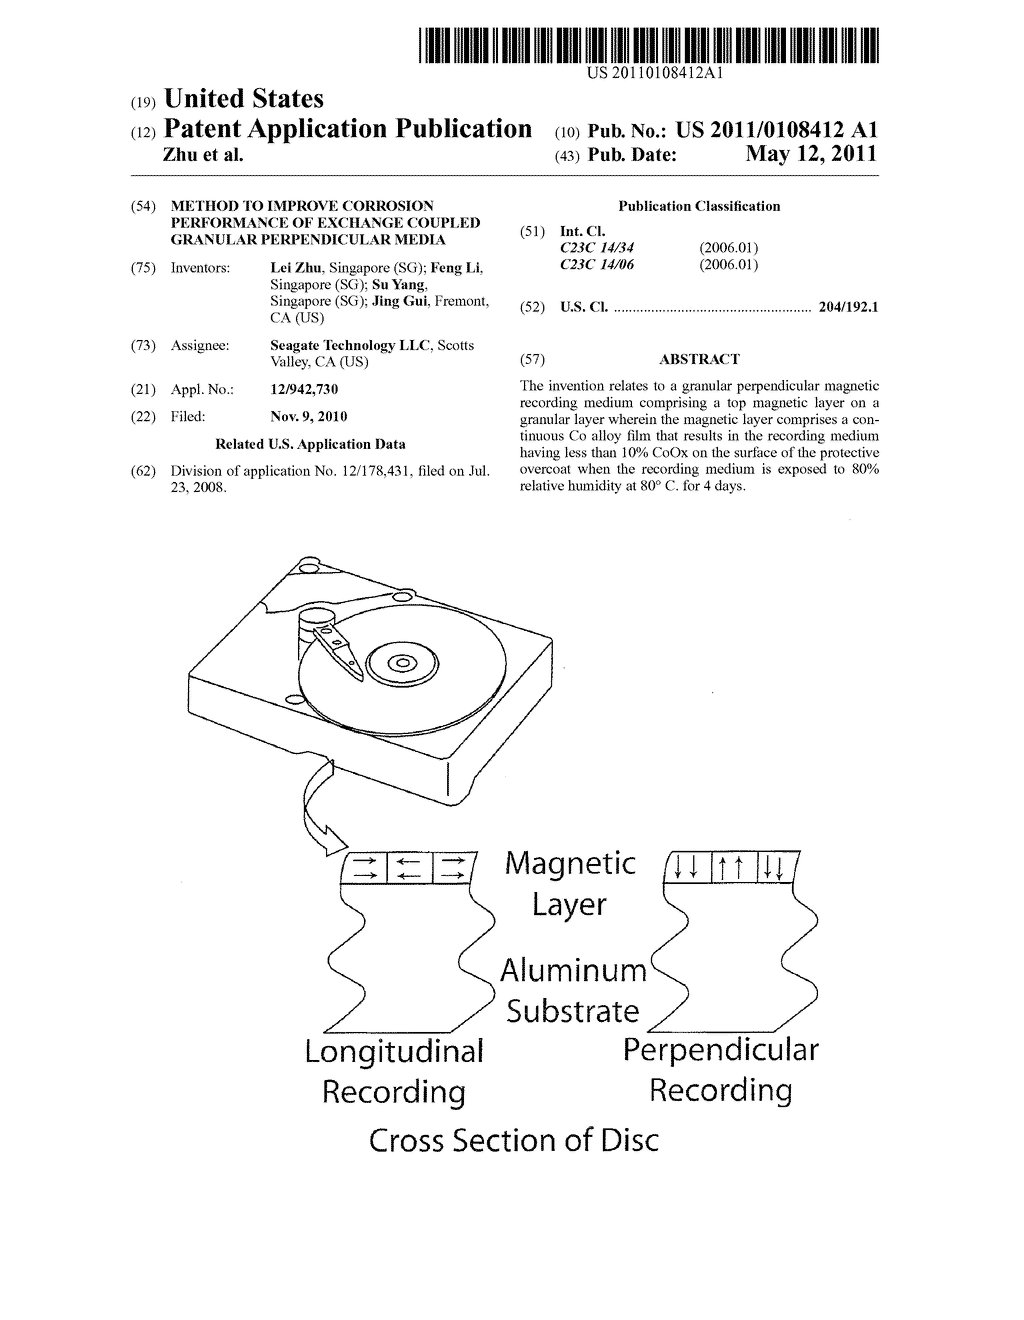 Method to Improve Corrosion Performance of Exchange Coupled Granular Perpendicular Media - diagram, schematic, and image 01